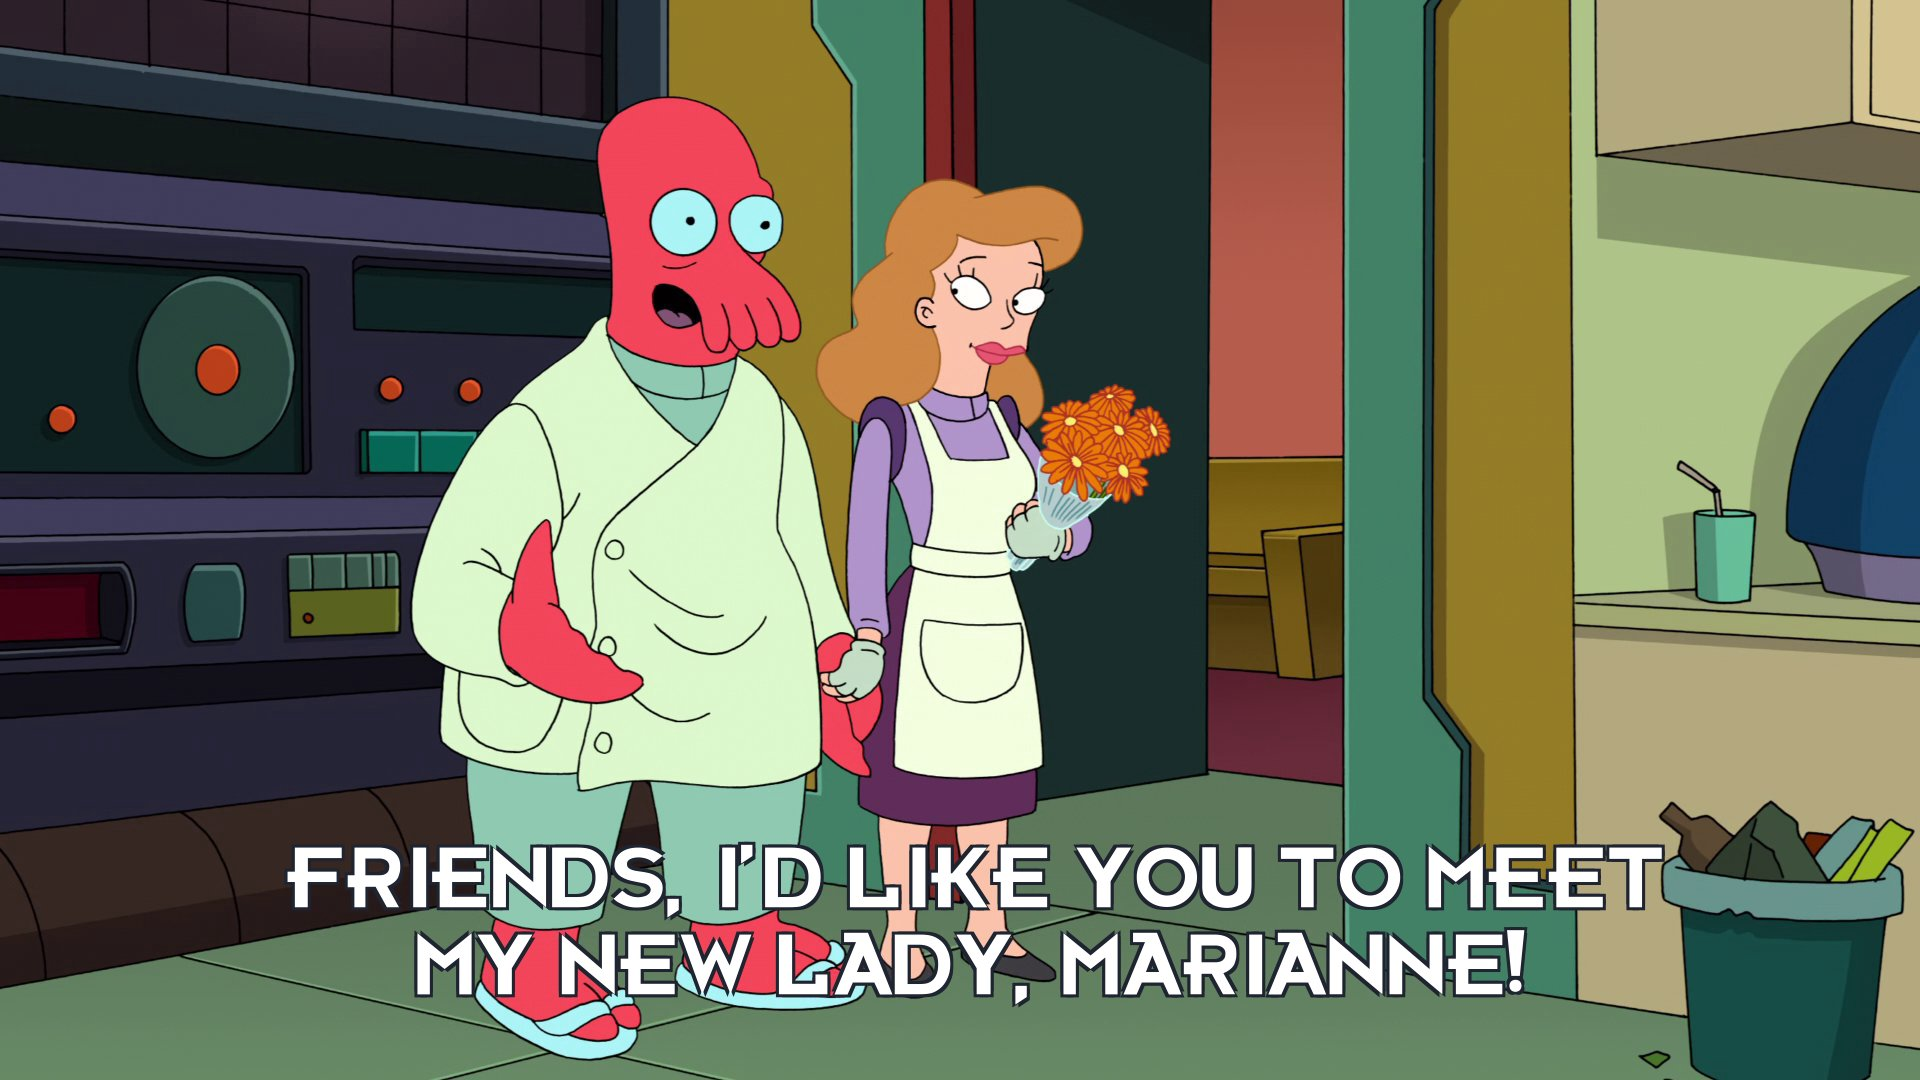 Dr John A Zoidberg: Friends, I'd like you to meet my new lady, Marianne!